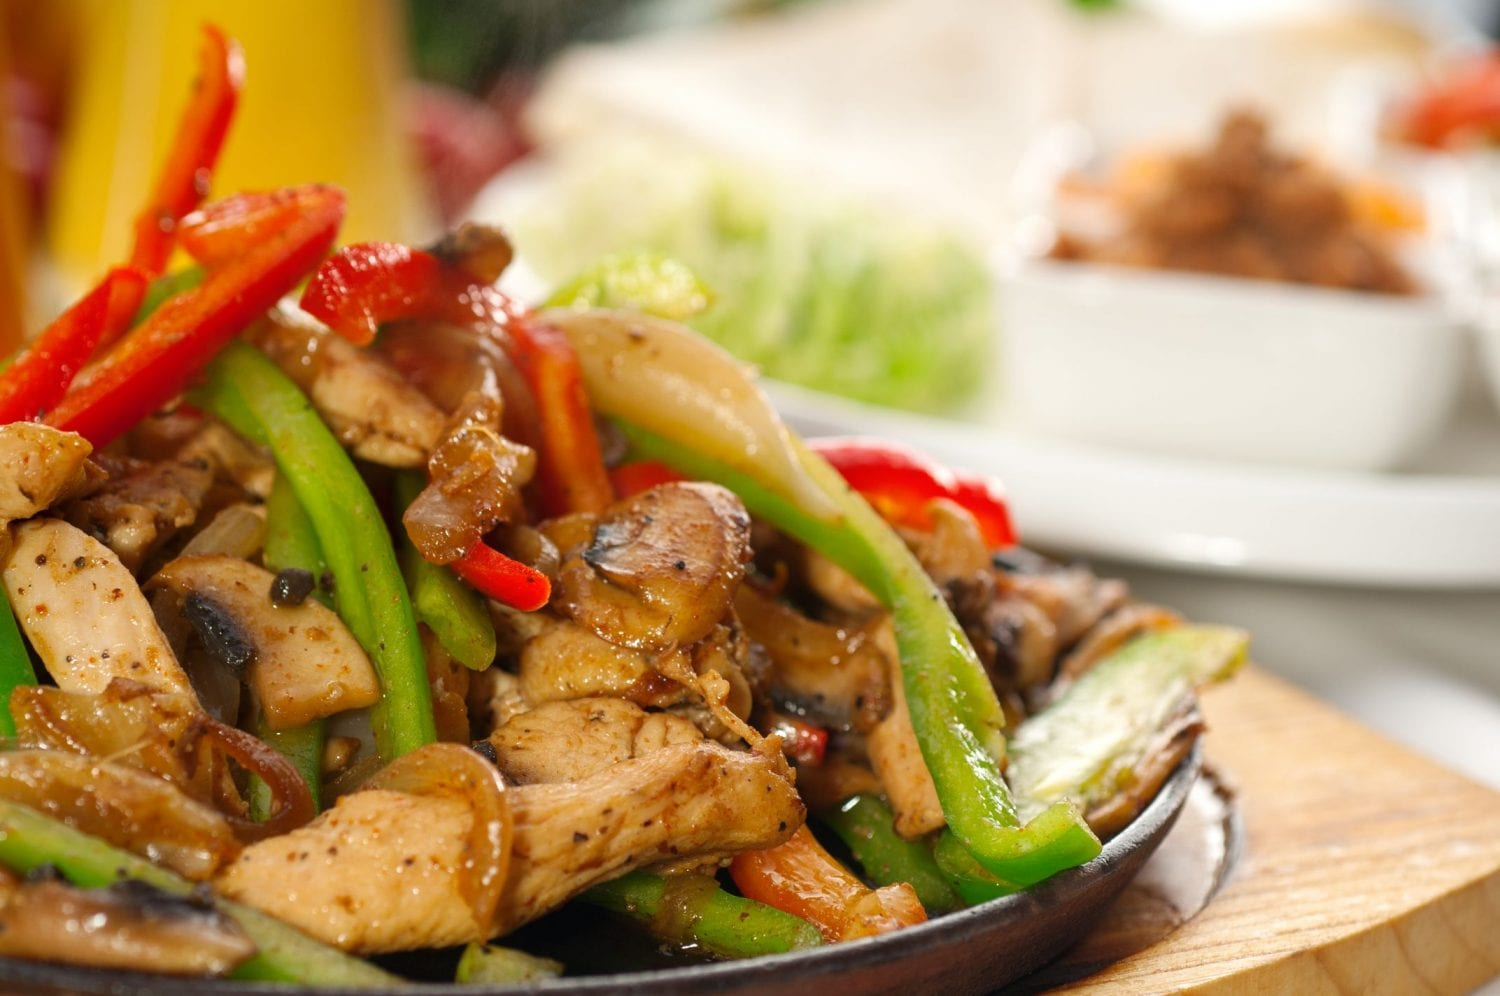 A hot pan with sizzling chicken green peppers red peppers and other veggies used for making weed fajitas